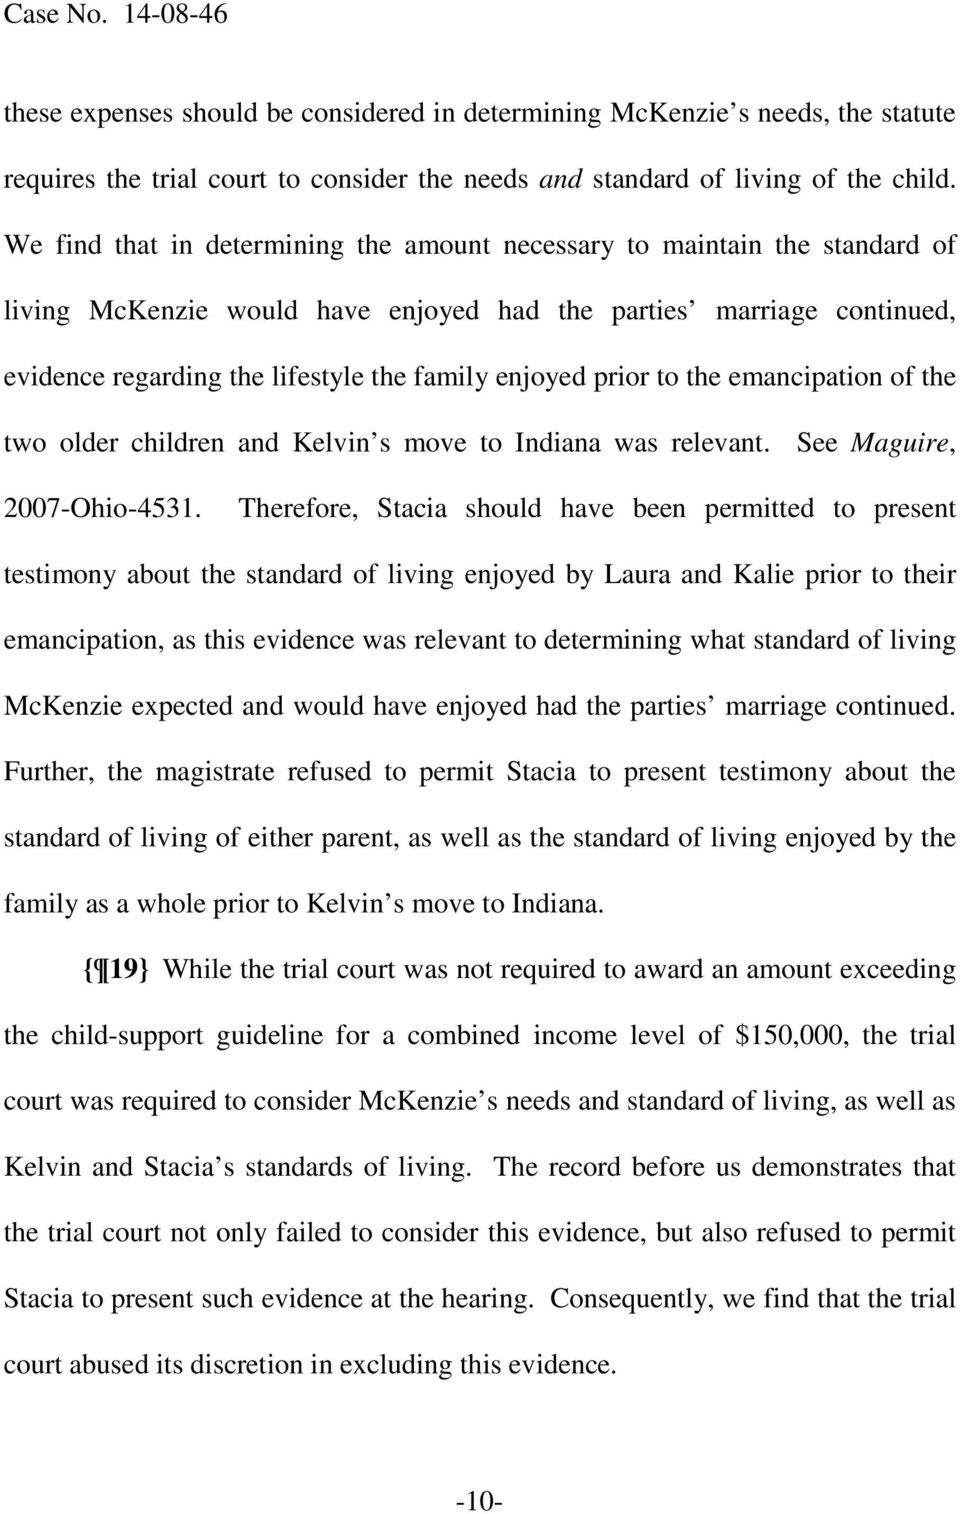 prior to the emancipation of the two older children and Kelvin s move to Indiana was relevant. See Maguire, 2007-Ohio-4531.